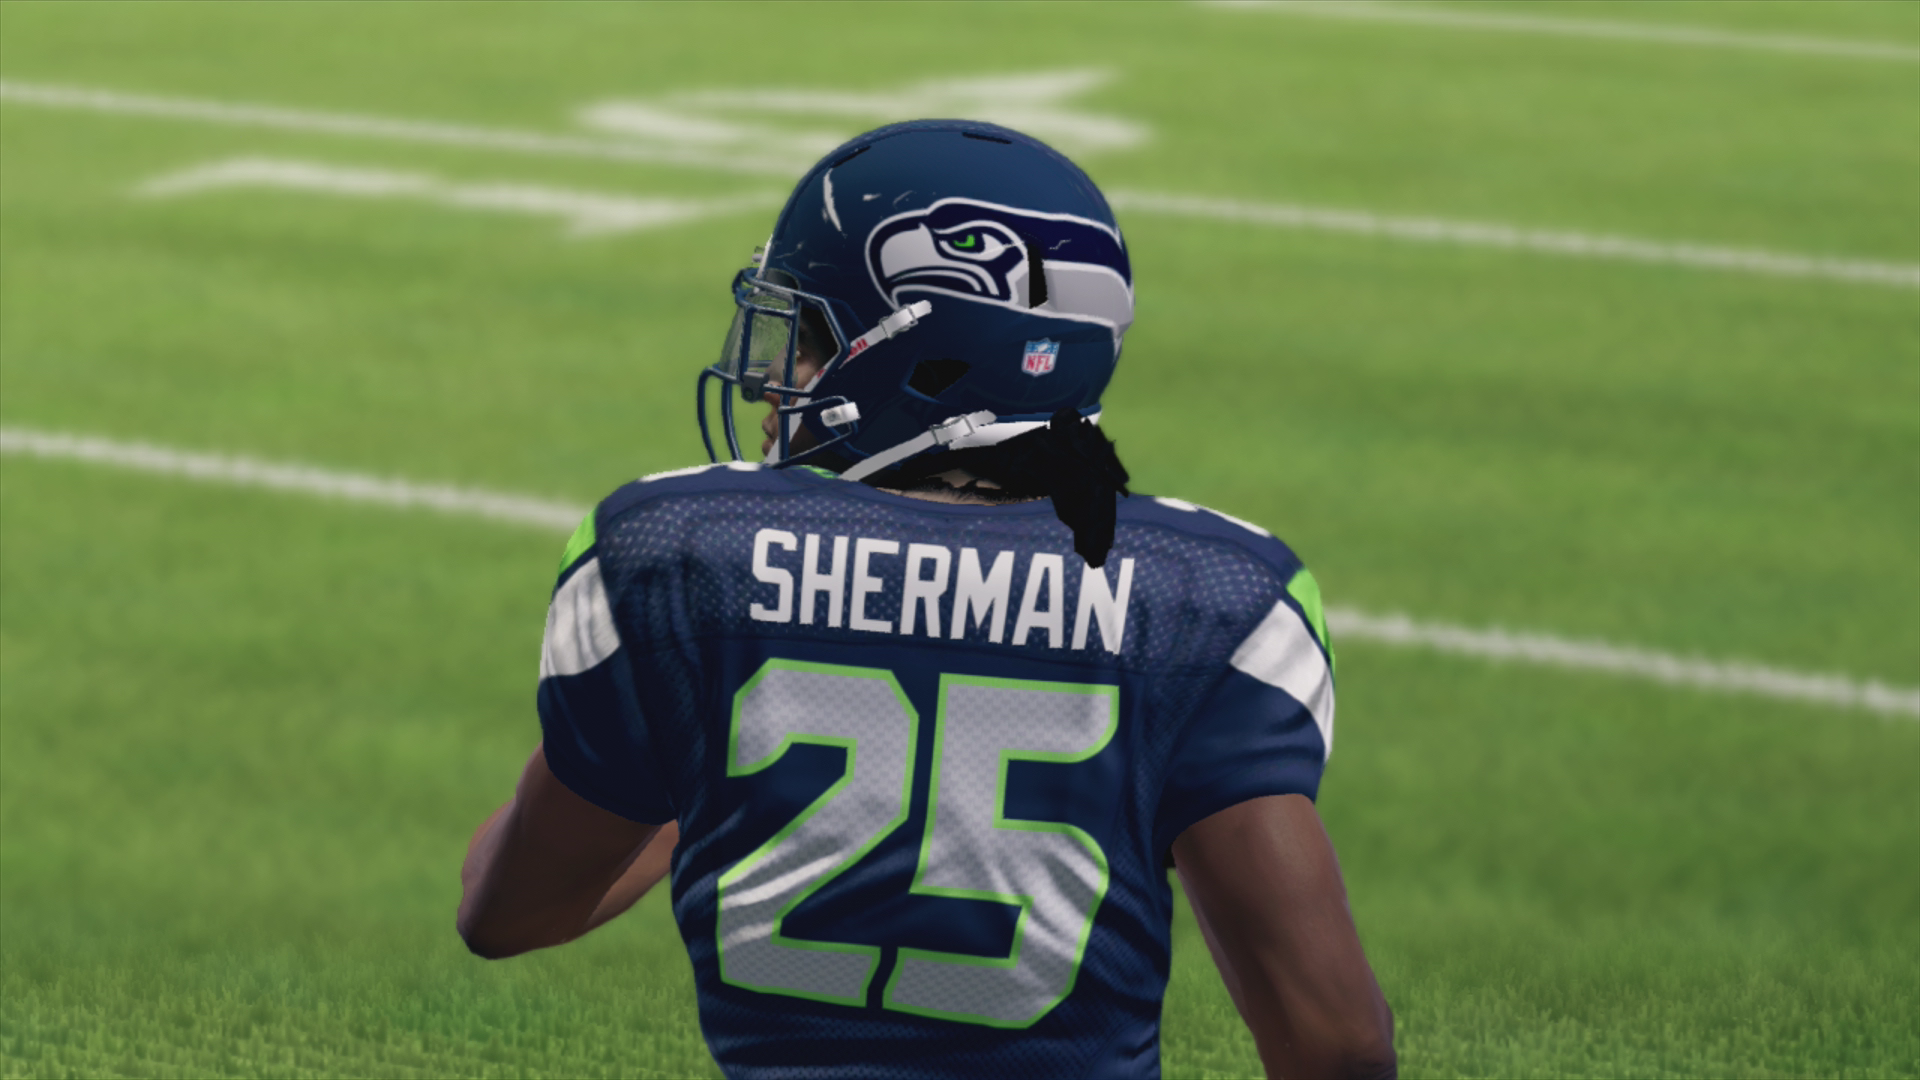 marshawn lynch wallpapers high quality download free